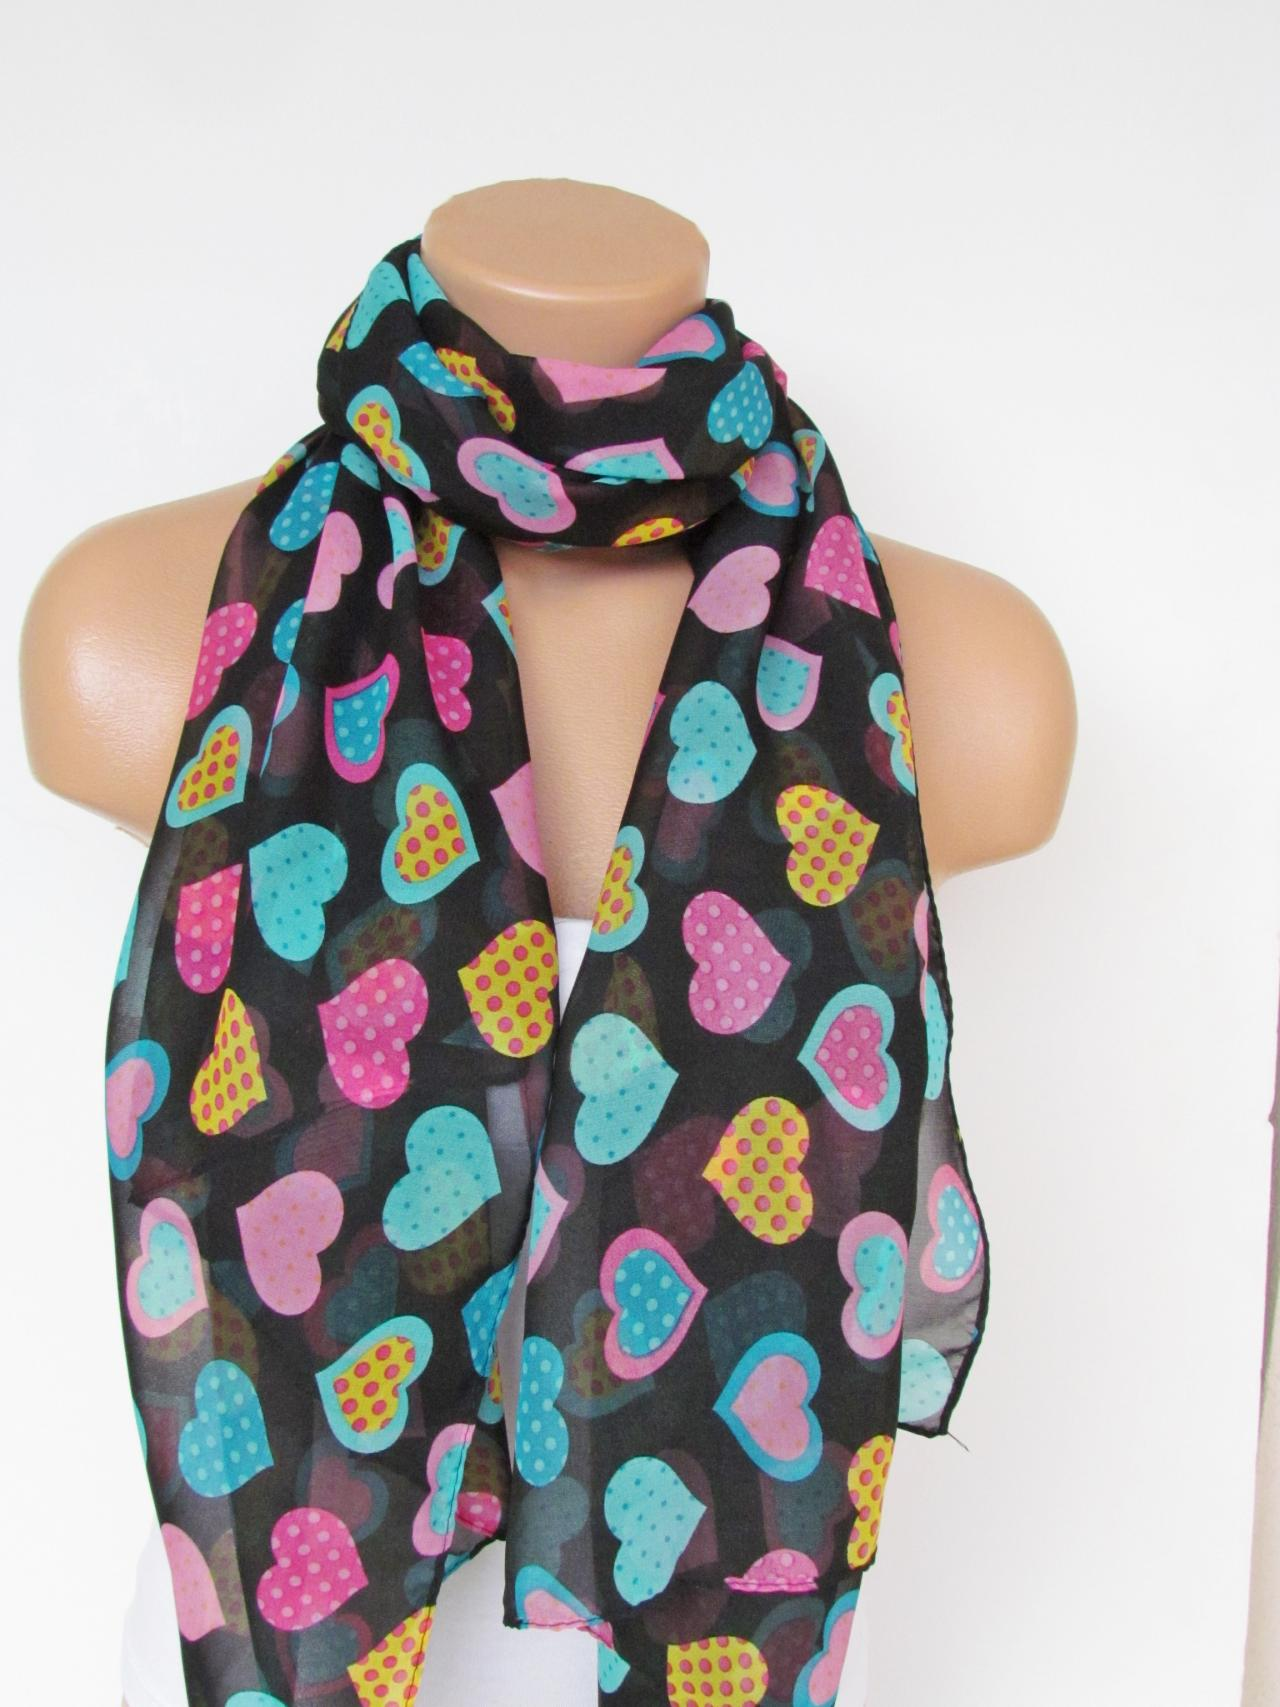 Oversize Heart Pattern Black and Multicolor Scarf -Fall Fashion Scarf-Headband-Beach Pareo- Infinity Scarf- Long Scarf-New Season